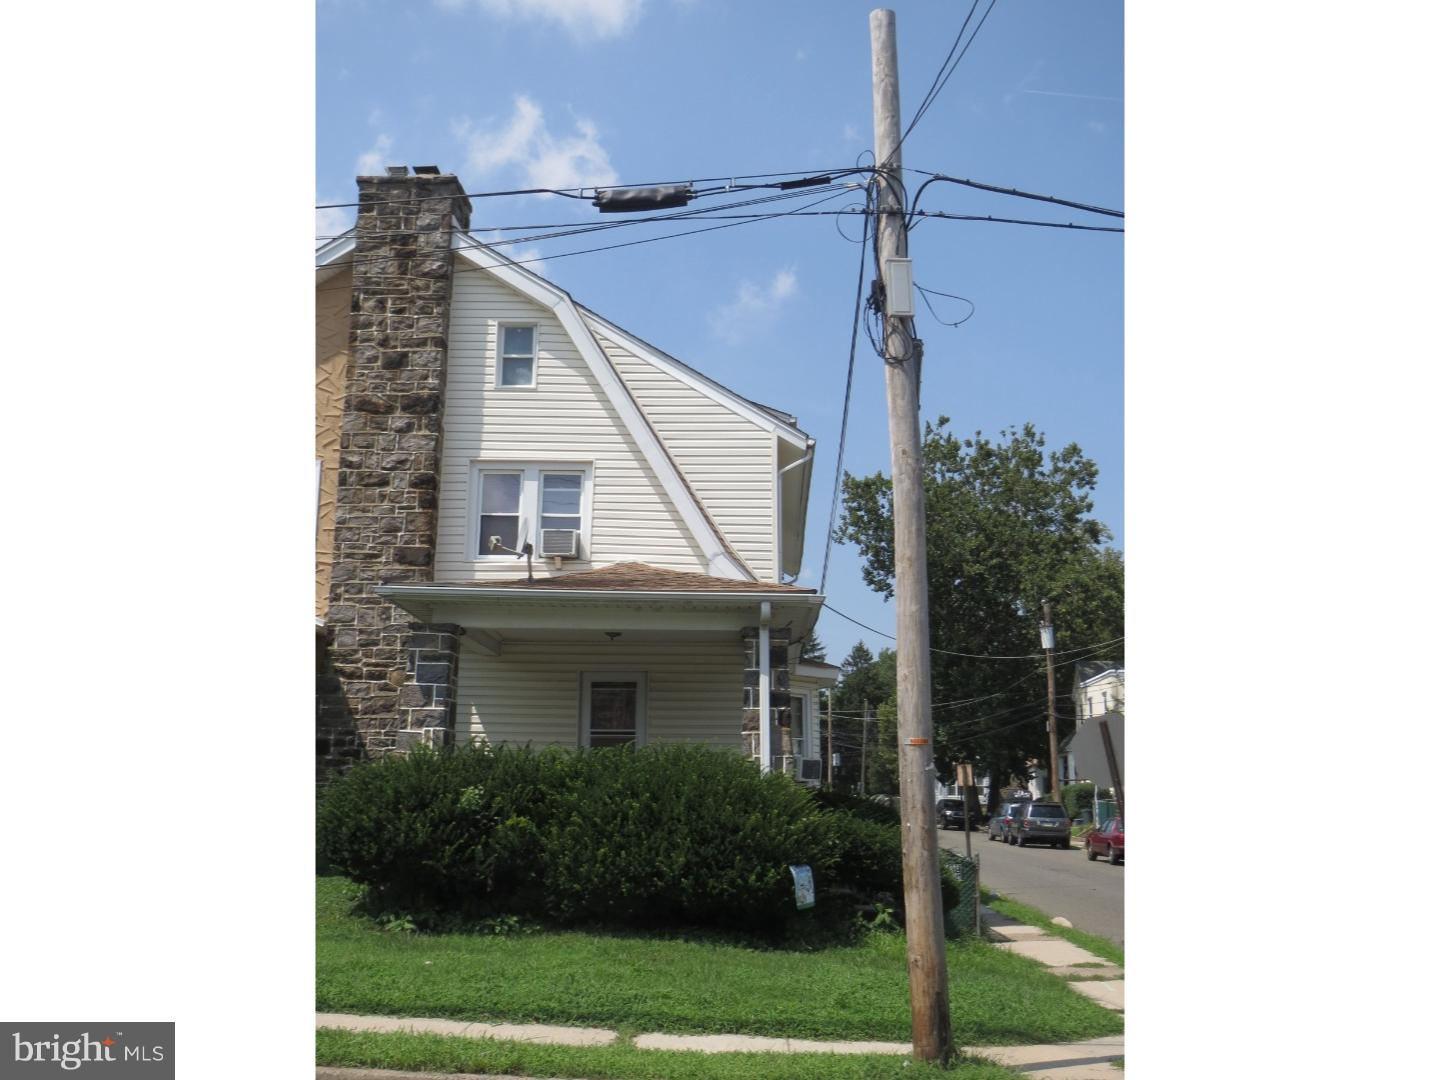 2501 Marshall Road Drexel Hill, PA 19026